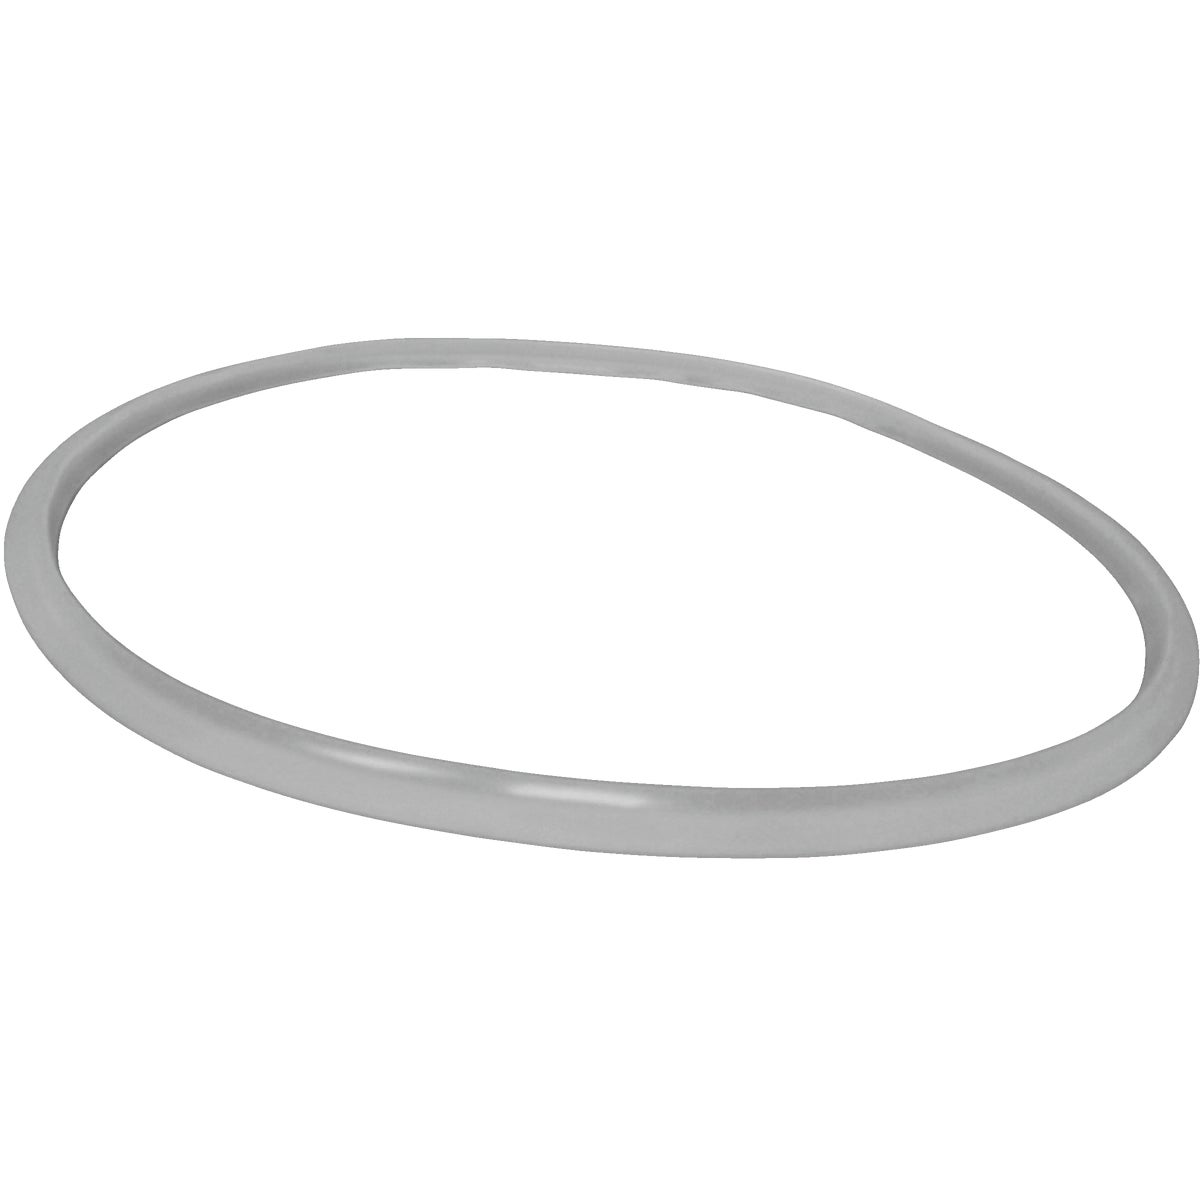 8QT REPLACEMENT GASKET - 92508 by T Fal Wearever